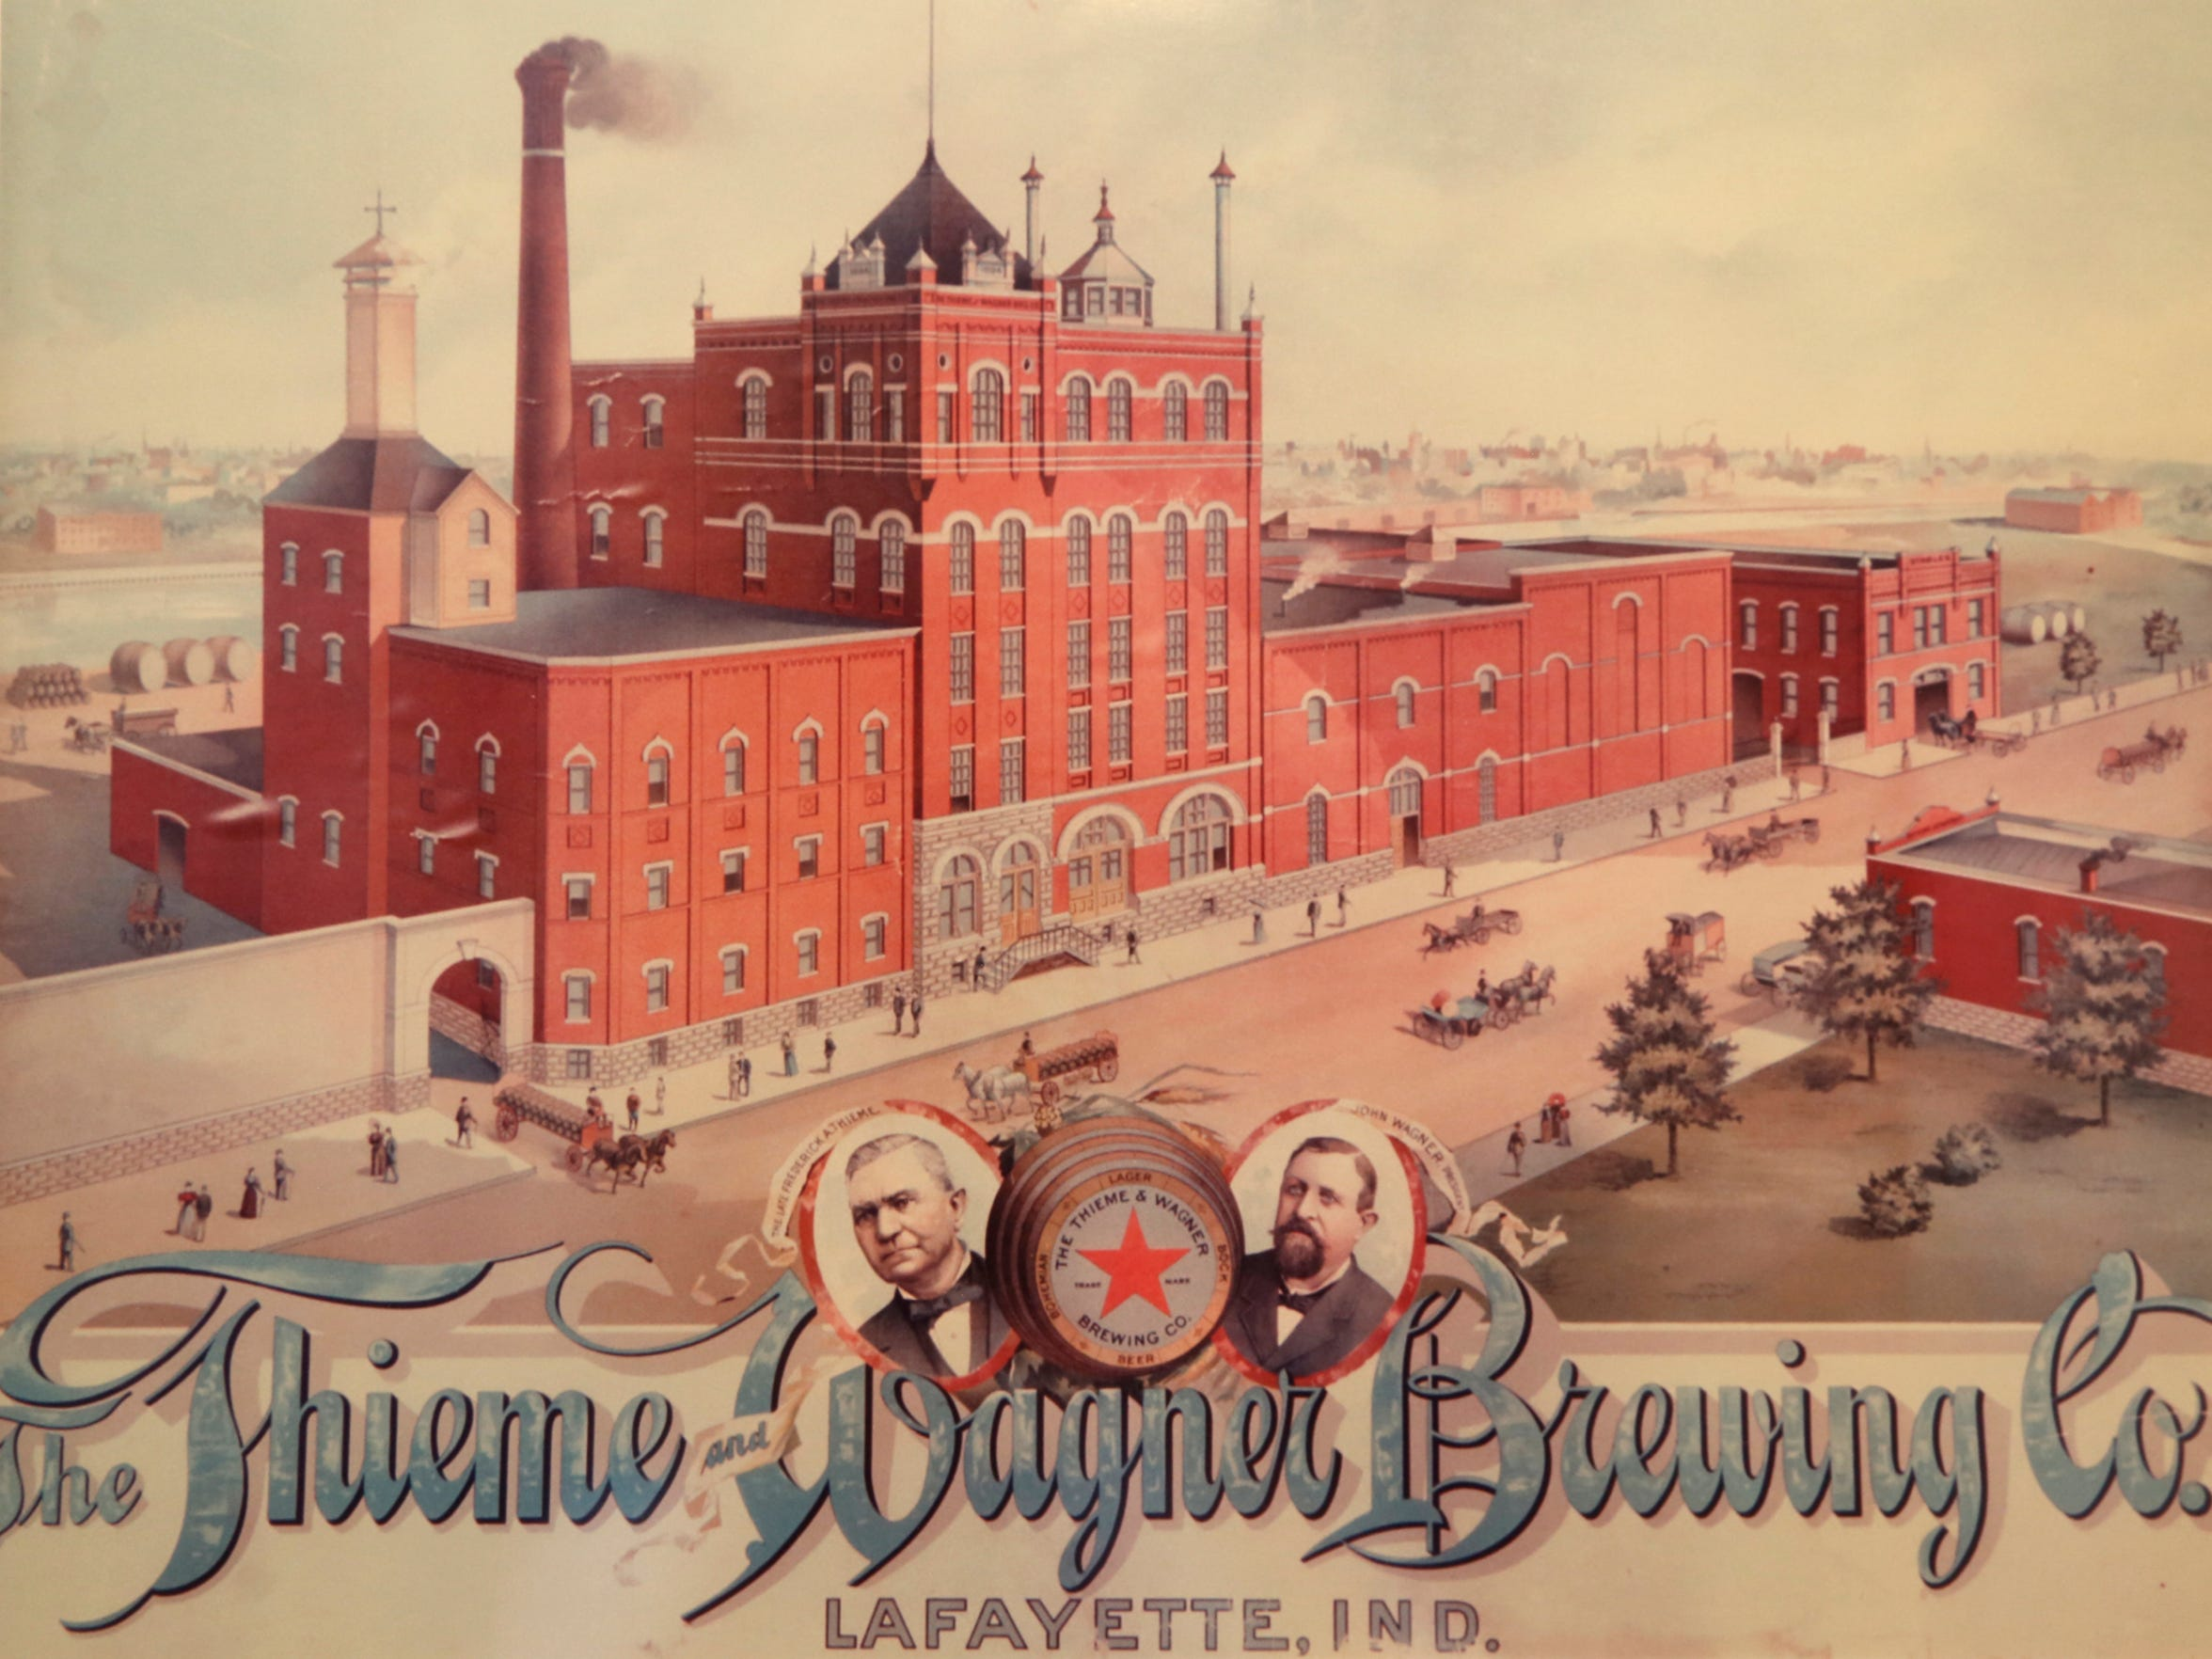 Thieme & Wagner beer memorabilia that is part of Walt